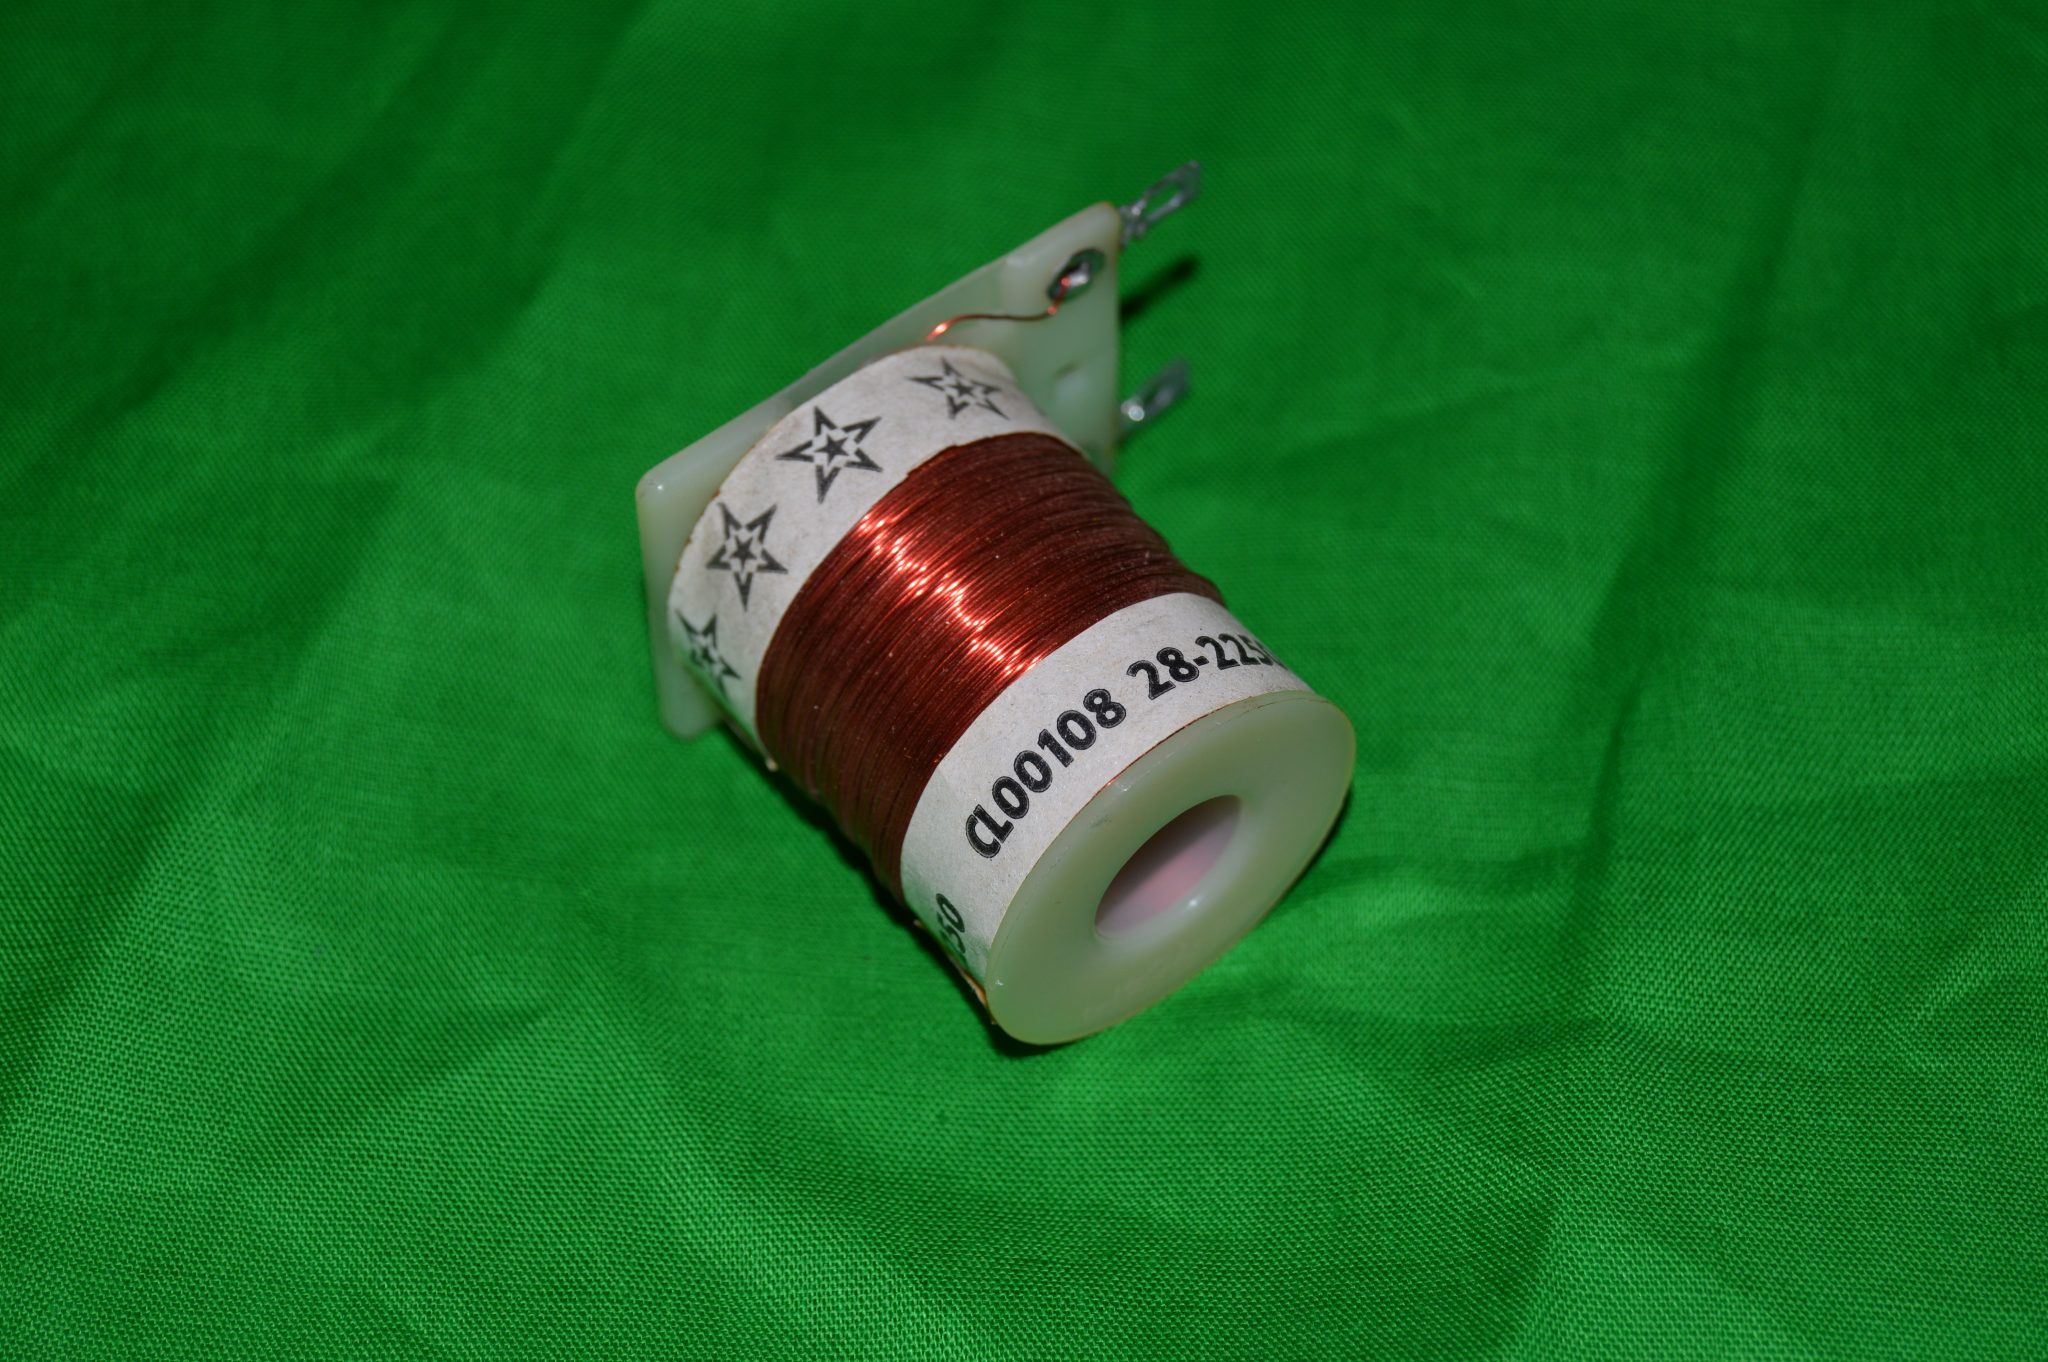 Capcom CL00108/28-2250 Coil